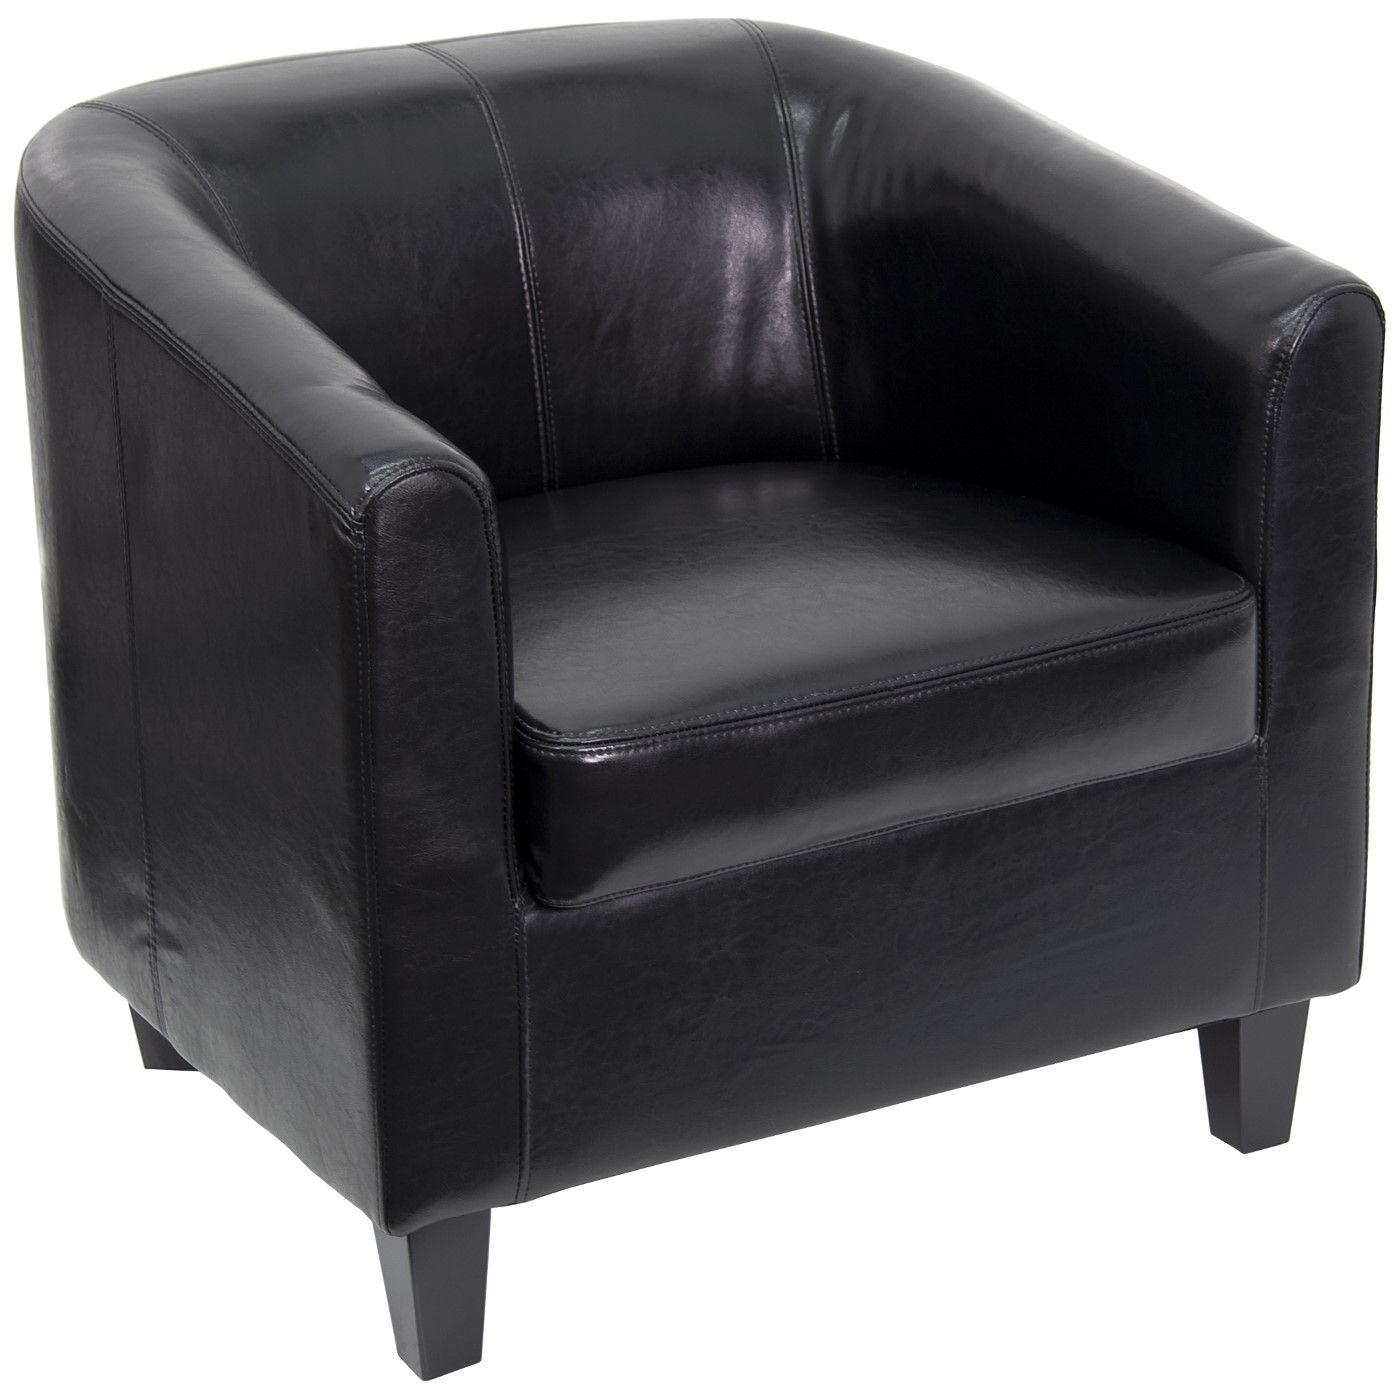 Black LeatherSoft Lounge Chair